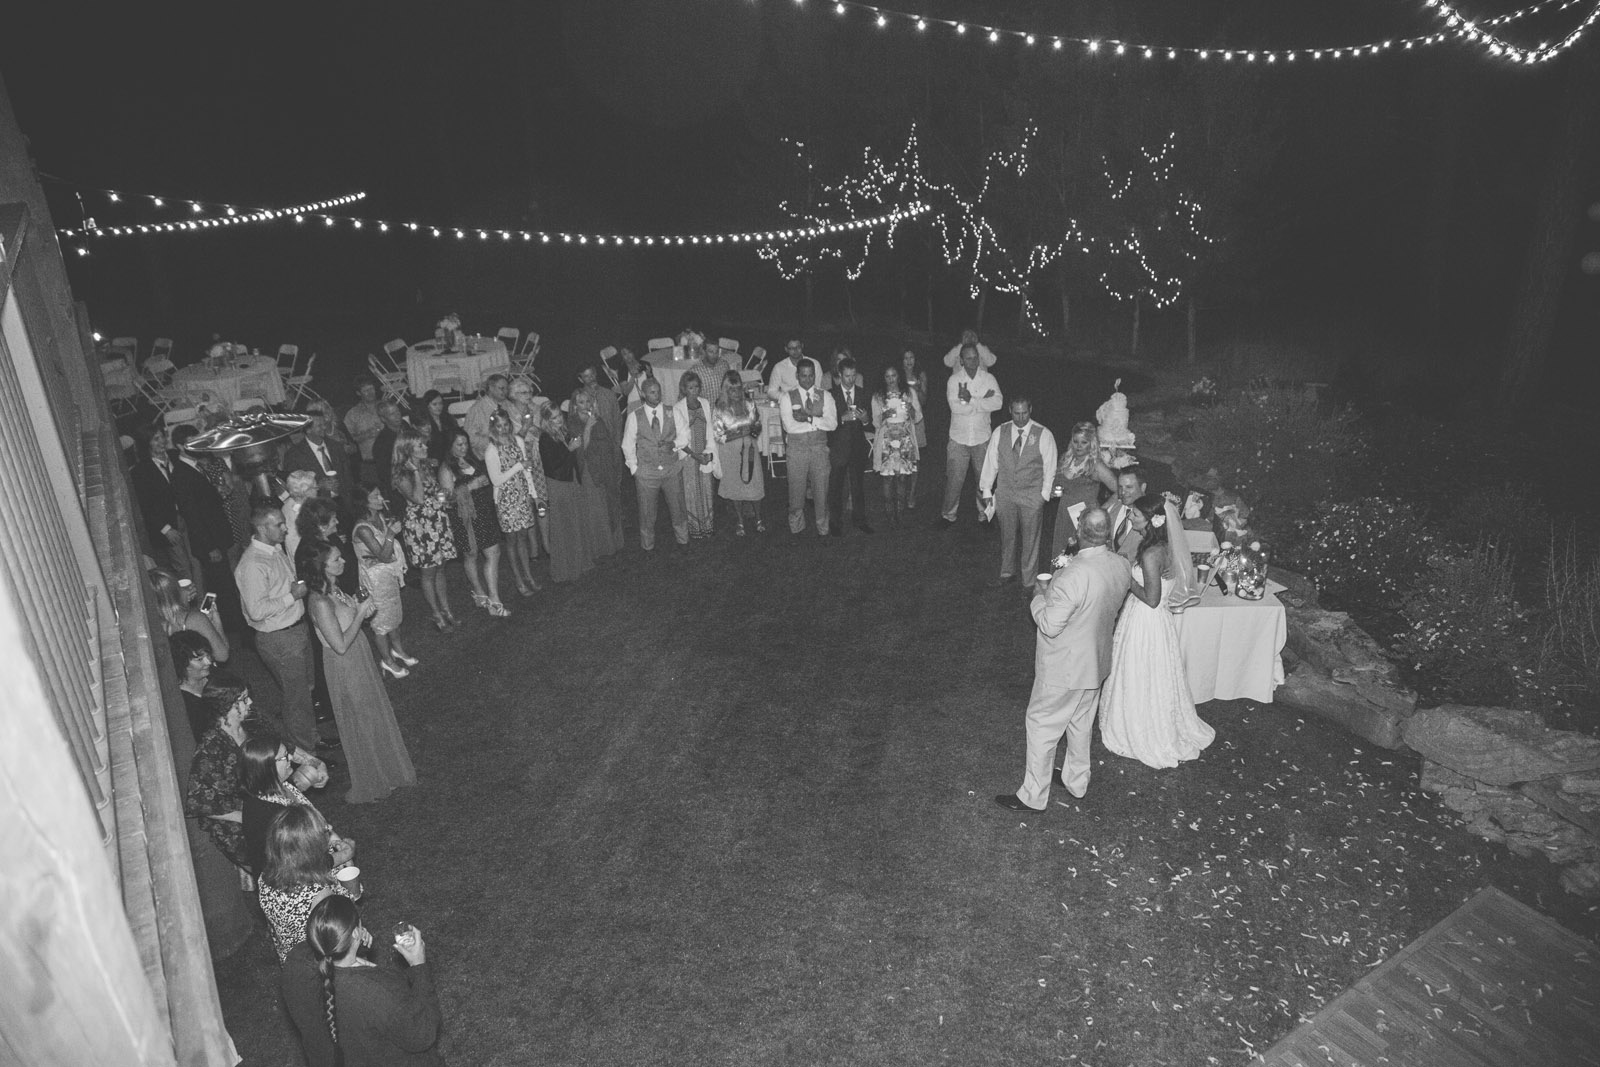 191-reception-ideas-reception-farmington-nm-co-new-mexico-colorado-mancos-ideas-string-lights-cabin-outside-natural-wedding-night-strobe-flash